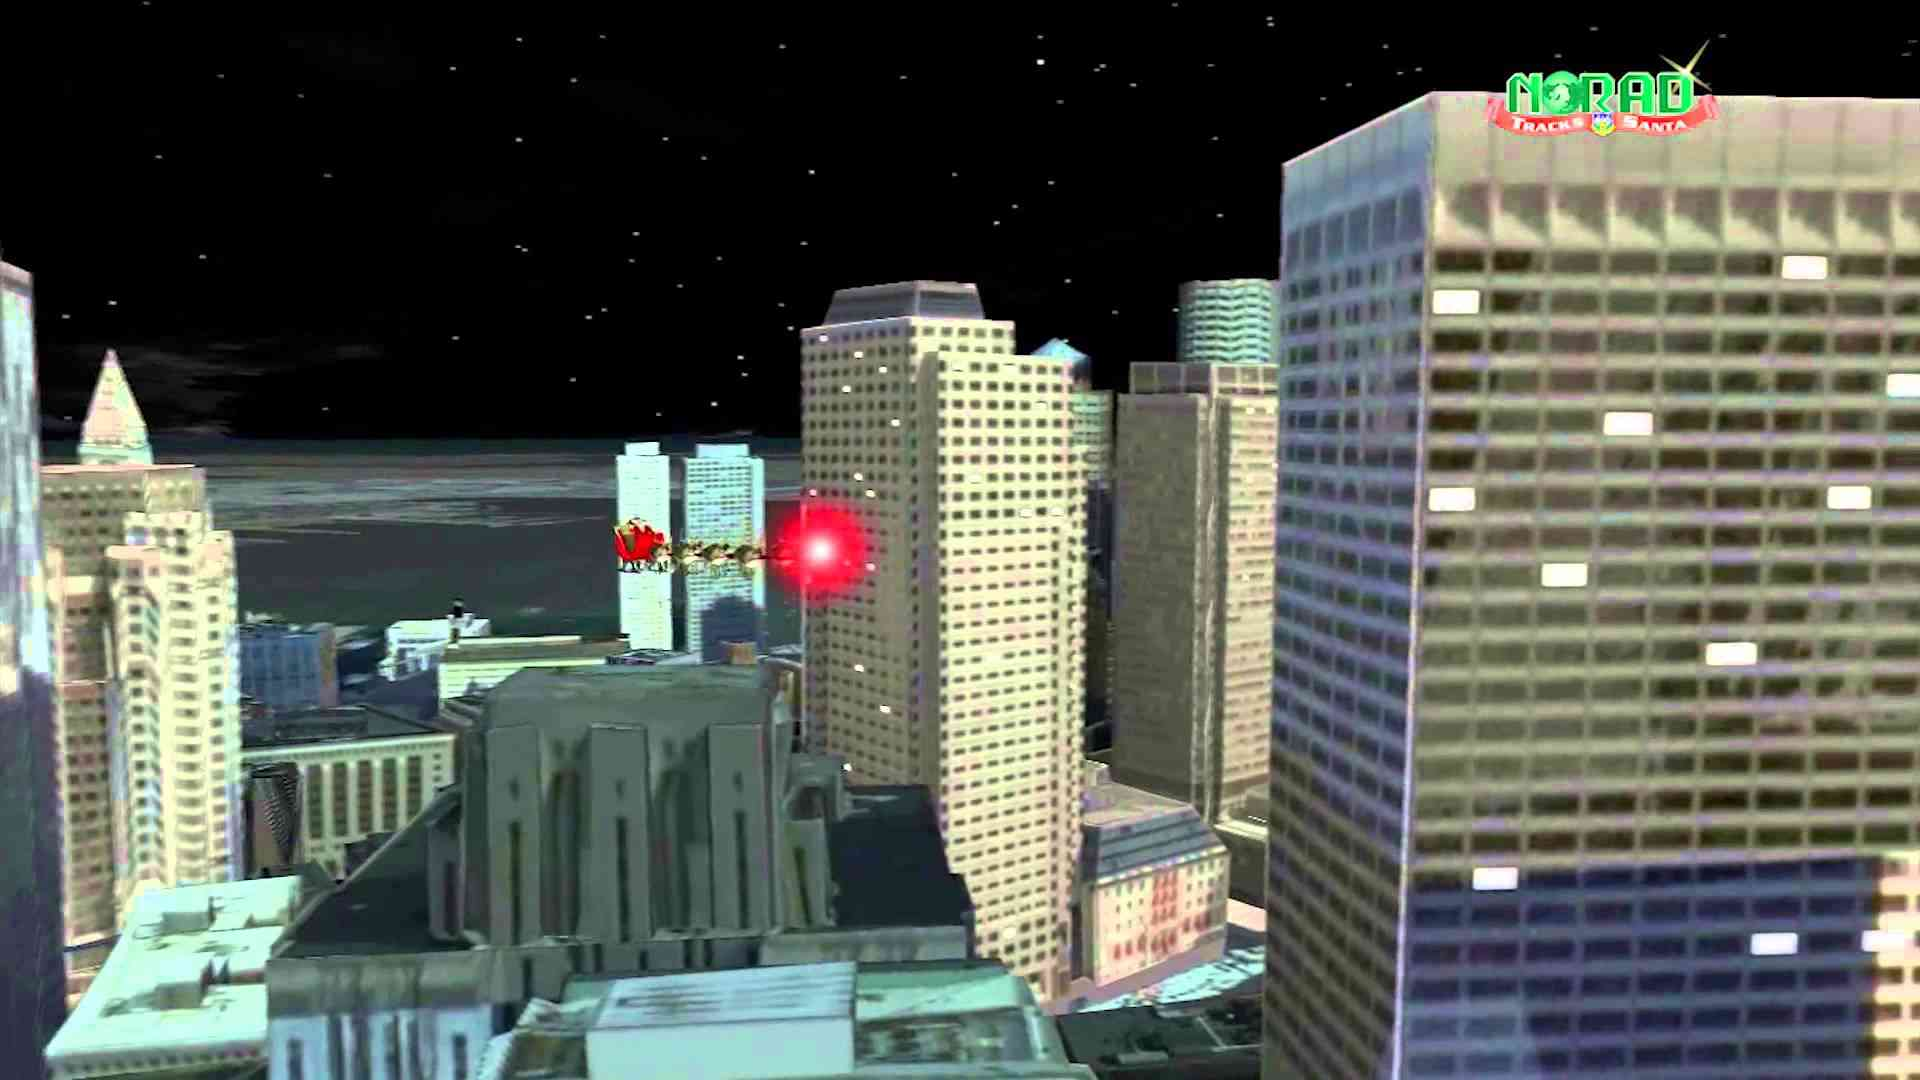 Norad Tracks Santa Trailer Video 2013 - YouTube